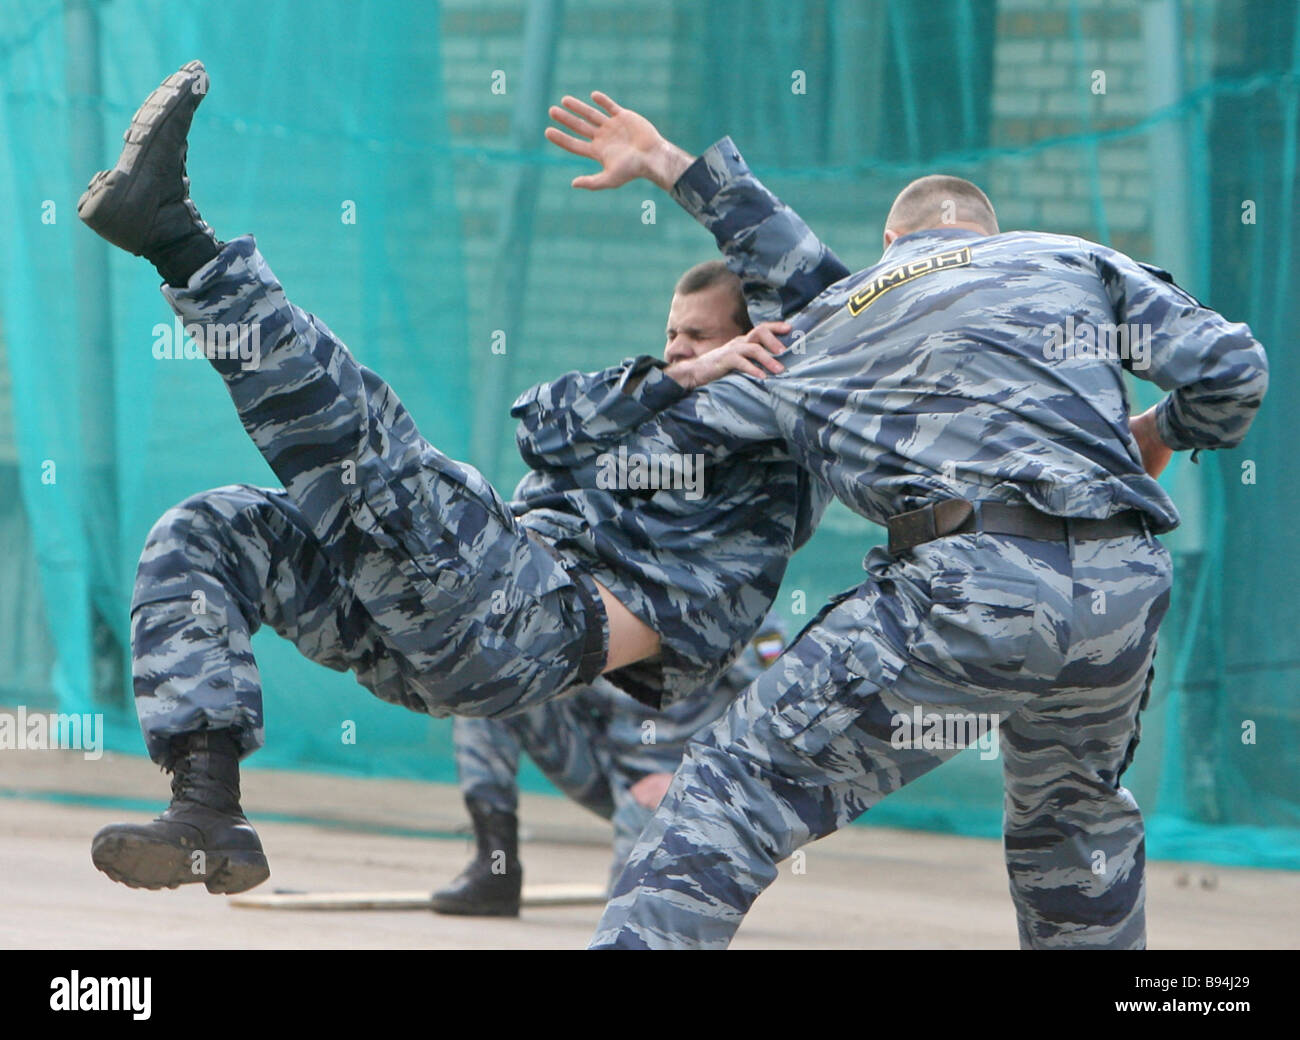 Exhibition performance on special police force Zubr training grounds - Stock Image